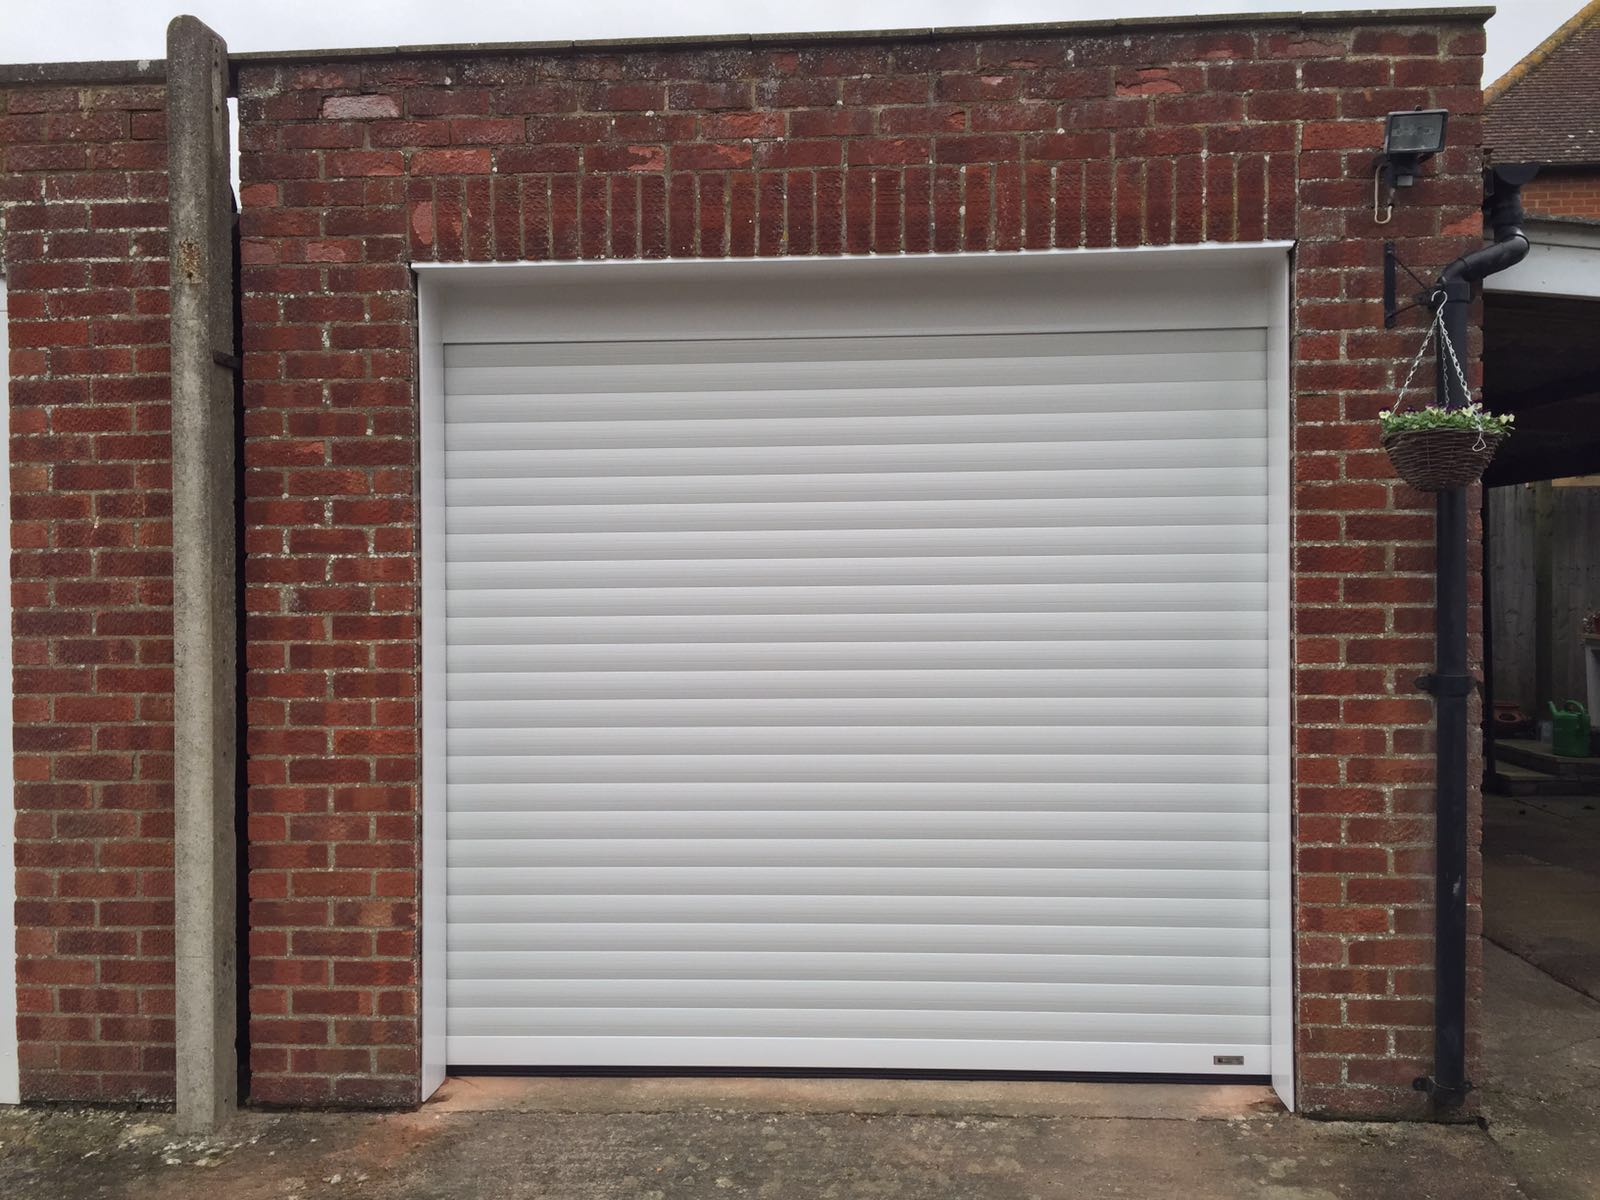 Seceuroglide roller garage door in thame